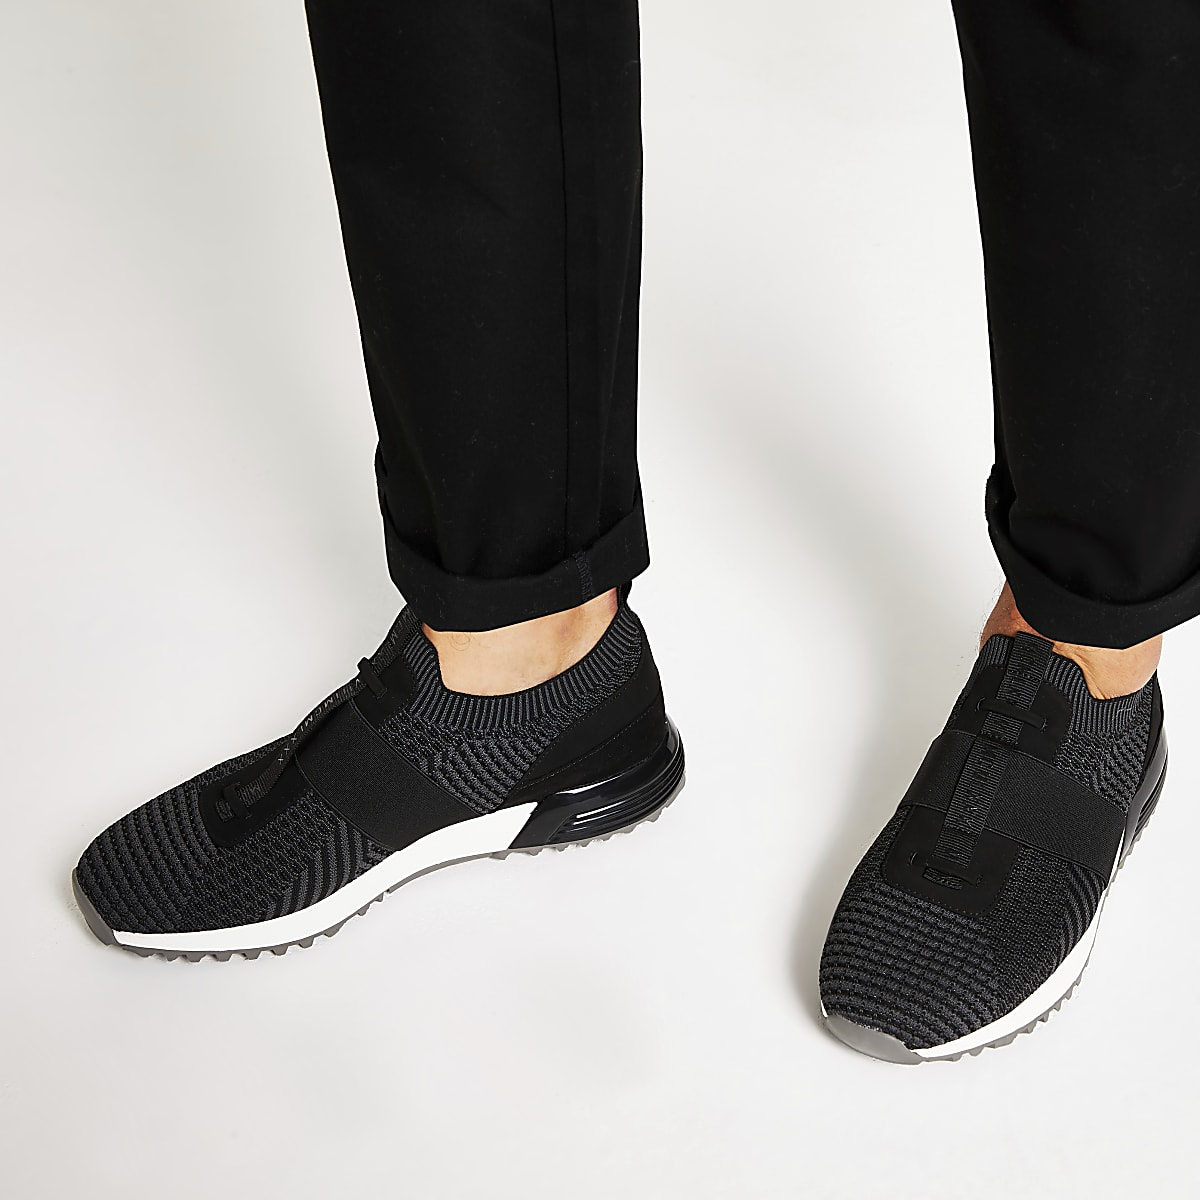 Black textured knit runner trainers